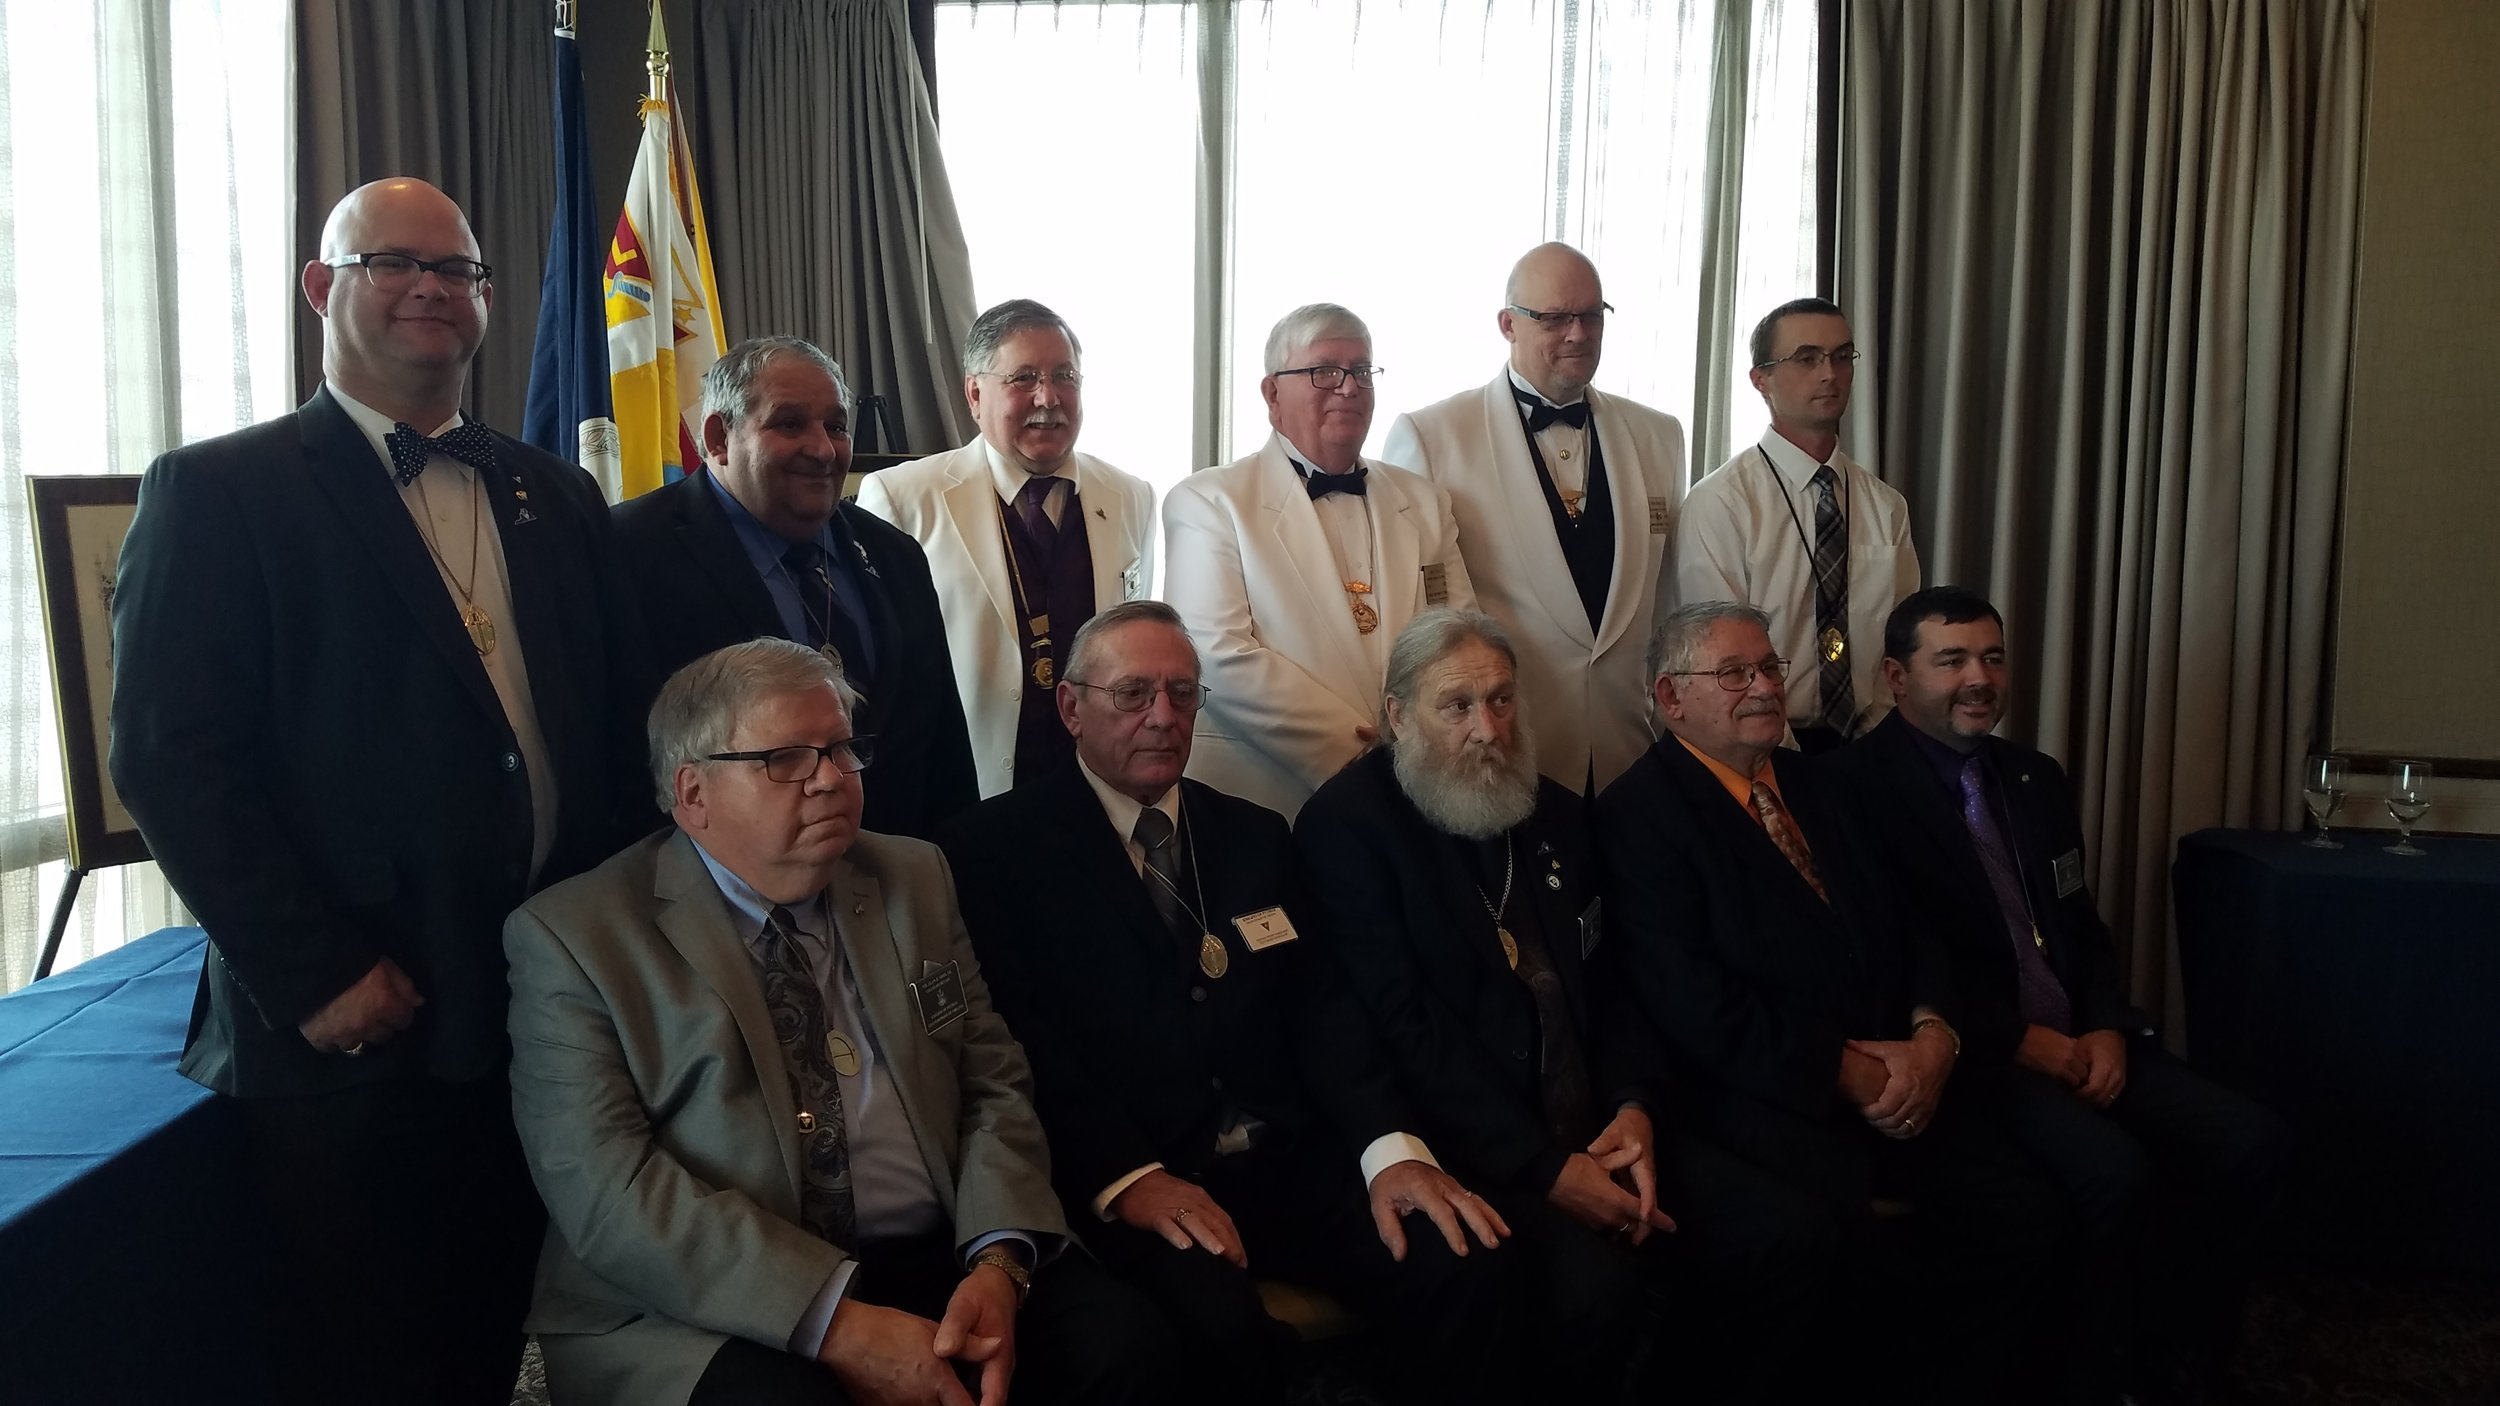 New 2019 Grand lodge officers for Virginia Grand Lodge, Knights of Pythias. Sitting L to R: Grand Sec. Sir Al Sims, PGC Steve Marquardt, sitting in for Grand Vice Chancellor Jeff Mohler, Grand Chancellor Zeke Reynolds, Grand Prelate Mike Benedict and Grand Treasurer Lyle Joyner. Standing- Grand Outer Raymond Jordan, Grand Master of Arms Mike Morad, Installing Officers- Supreme Rep Mike Thornton, Supreme Master of Arms Mark Ward, Supreme Prelate Mark Mead and Grand Inner Guard Josh Tabor. They were installed at GL convention Oct 13 in Virginia Beach, VA.